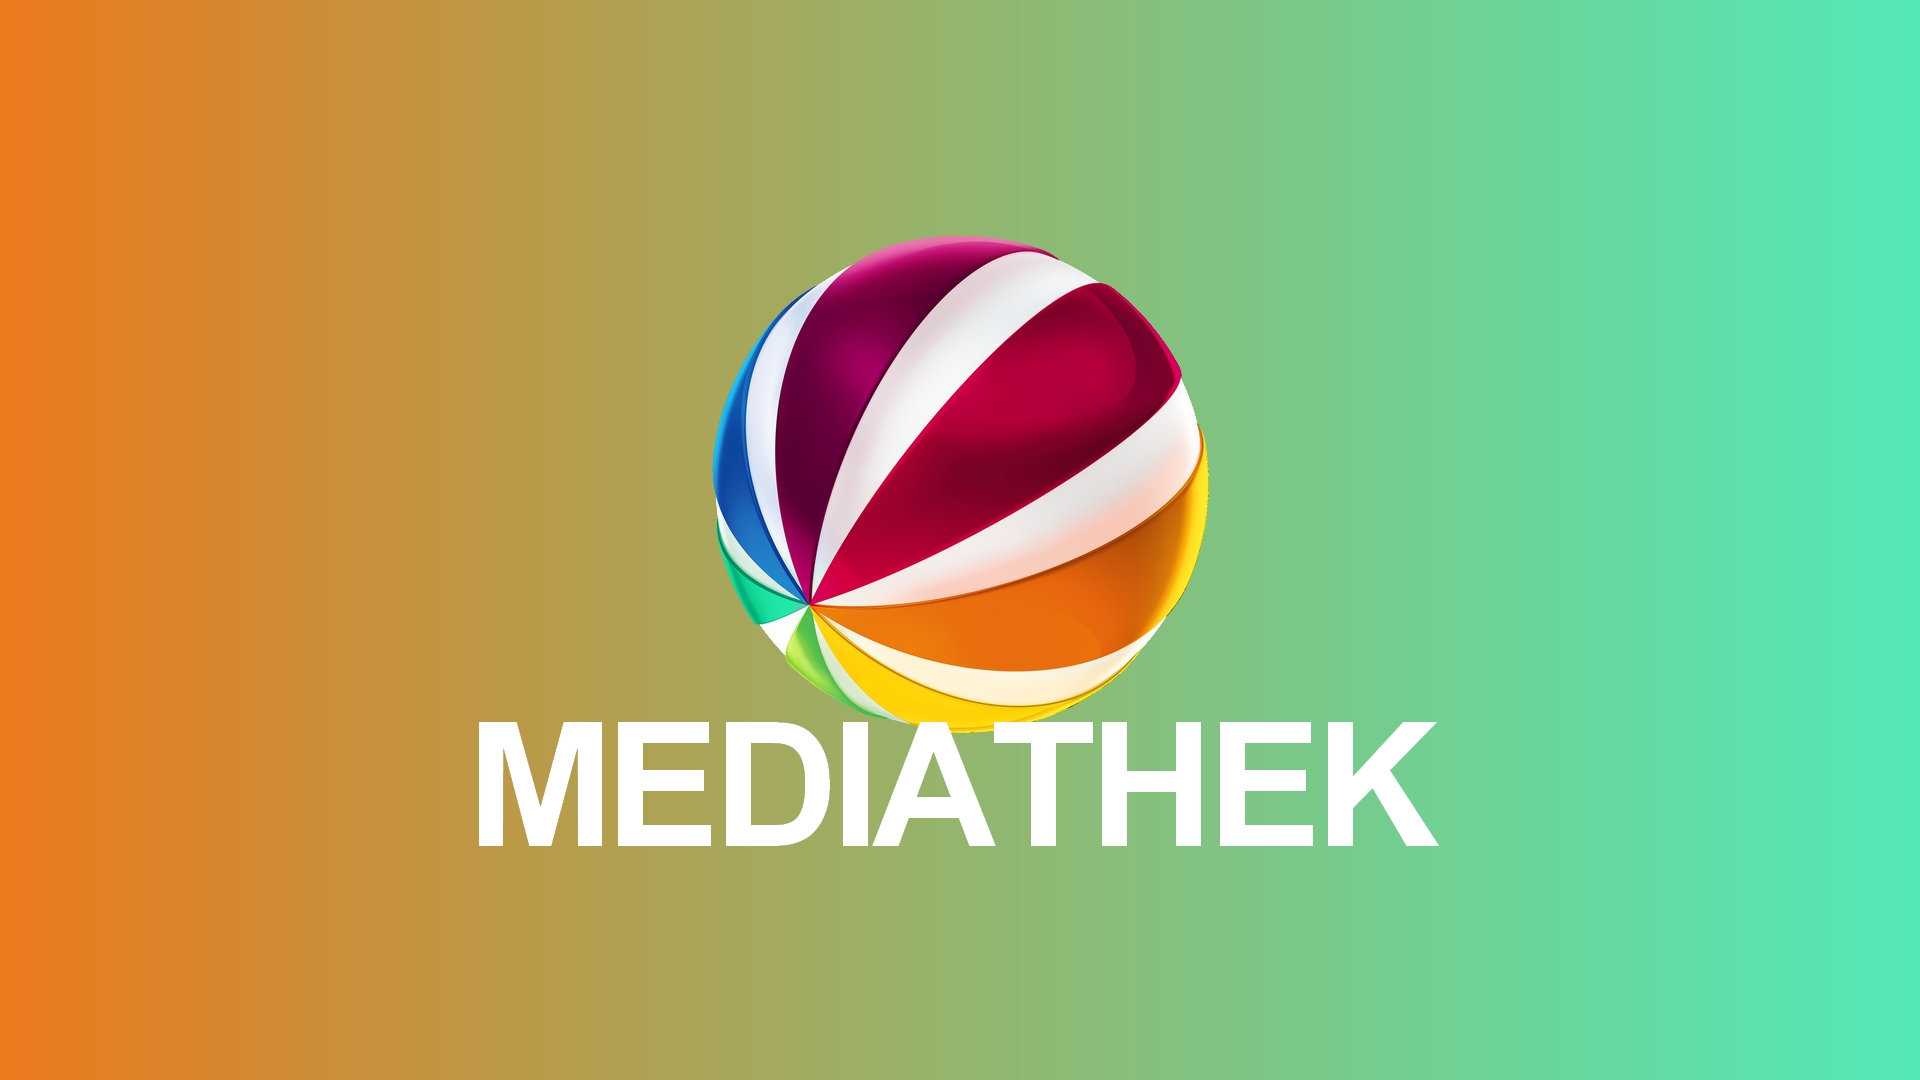 Sat 1 Mediathek Voice Of Germany